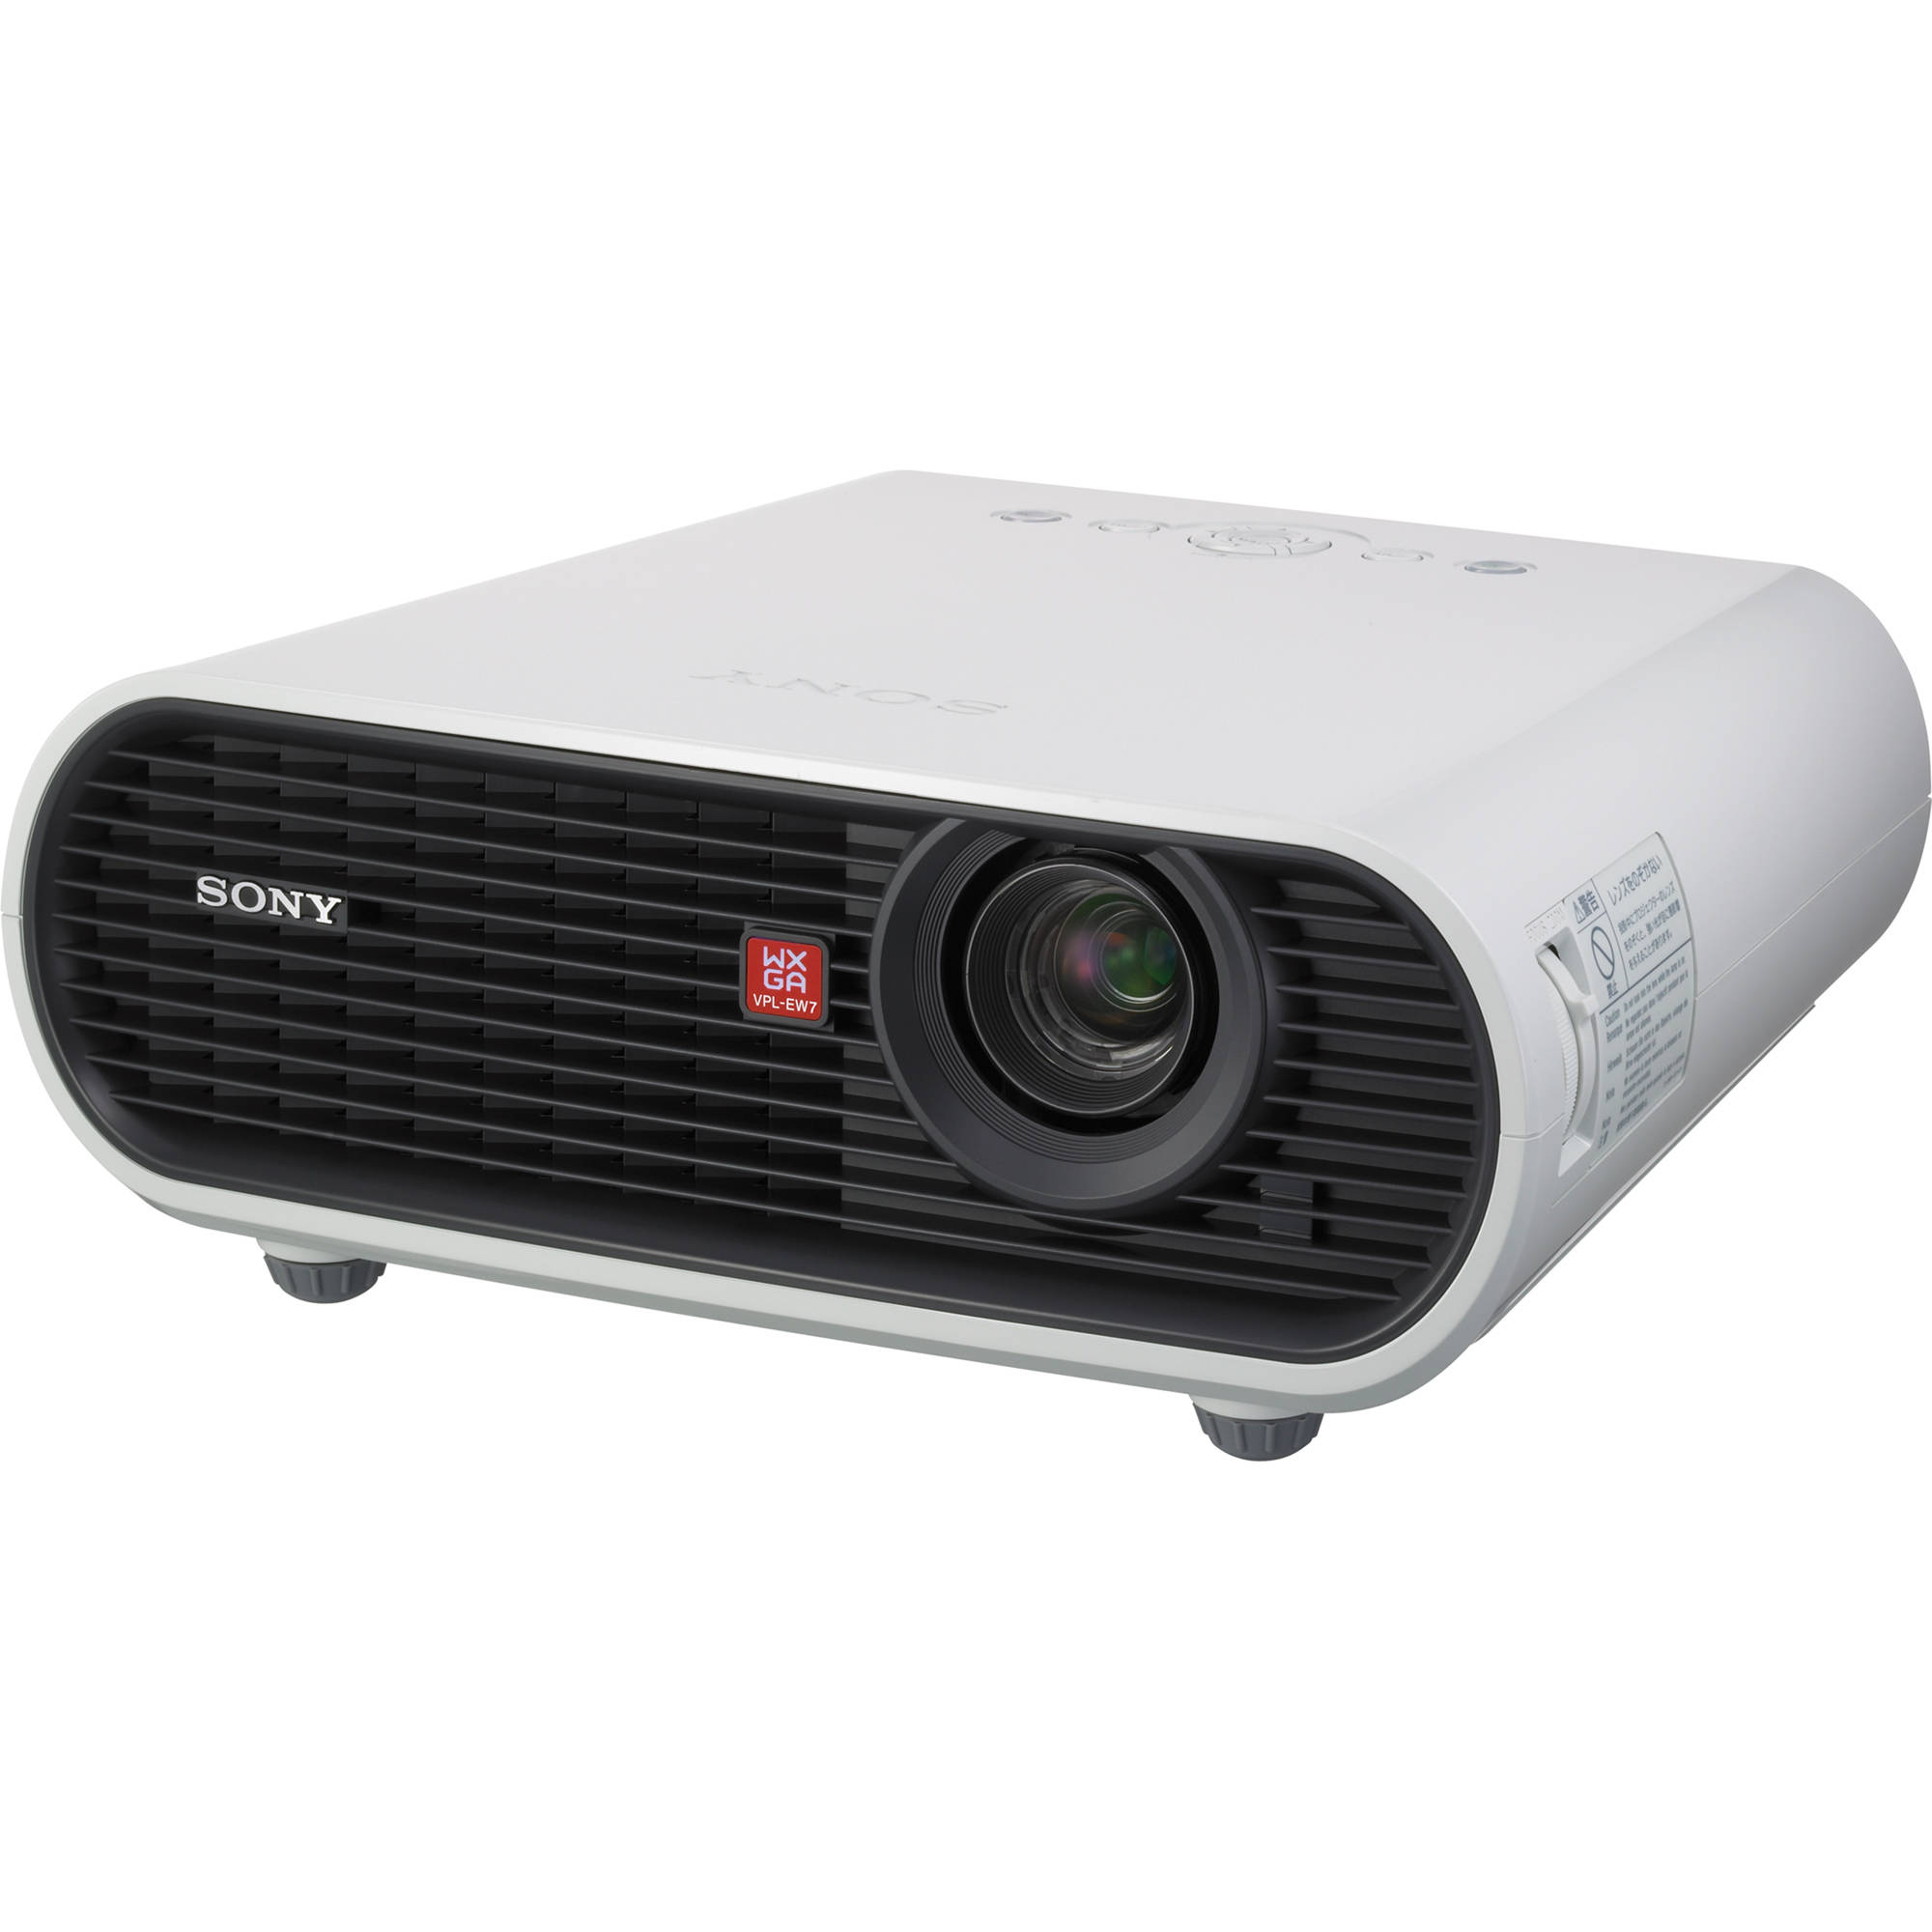 Sony vpl ew 3lcd portable projector vplew7 b h photo video for Projector tv reviews